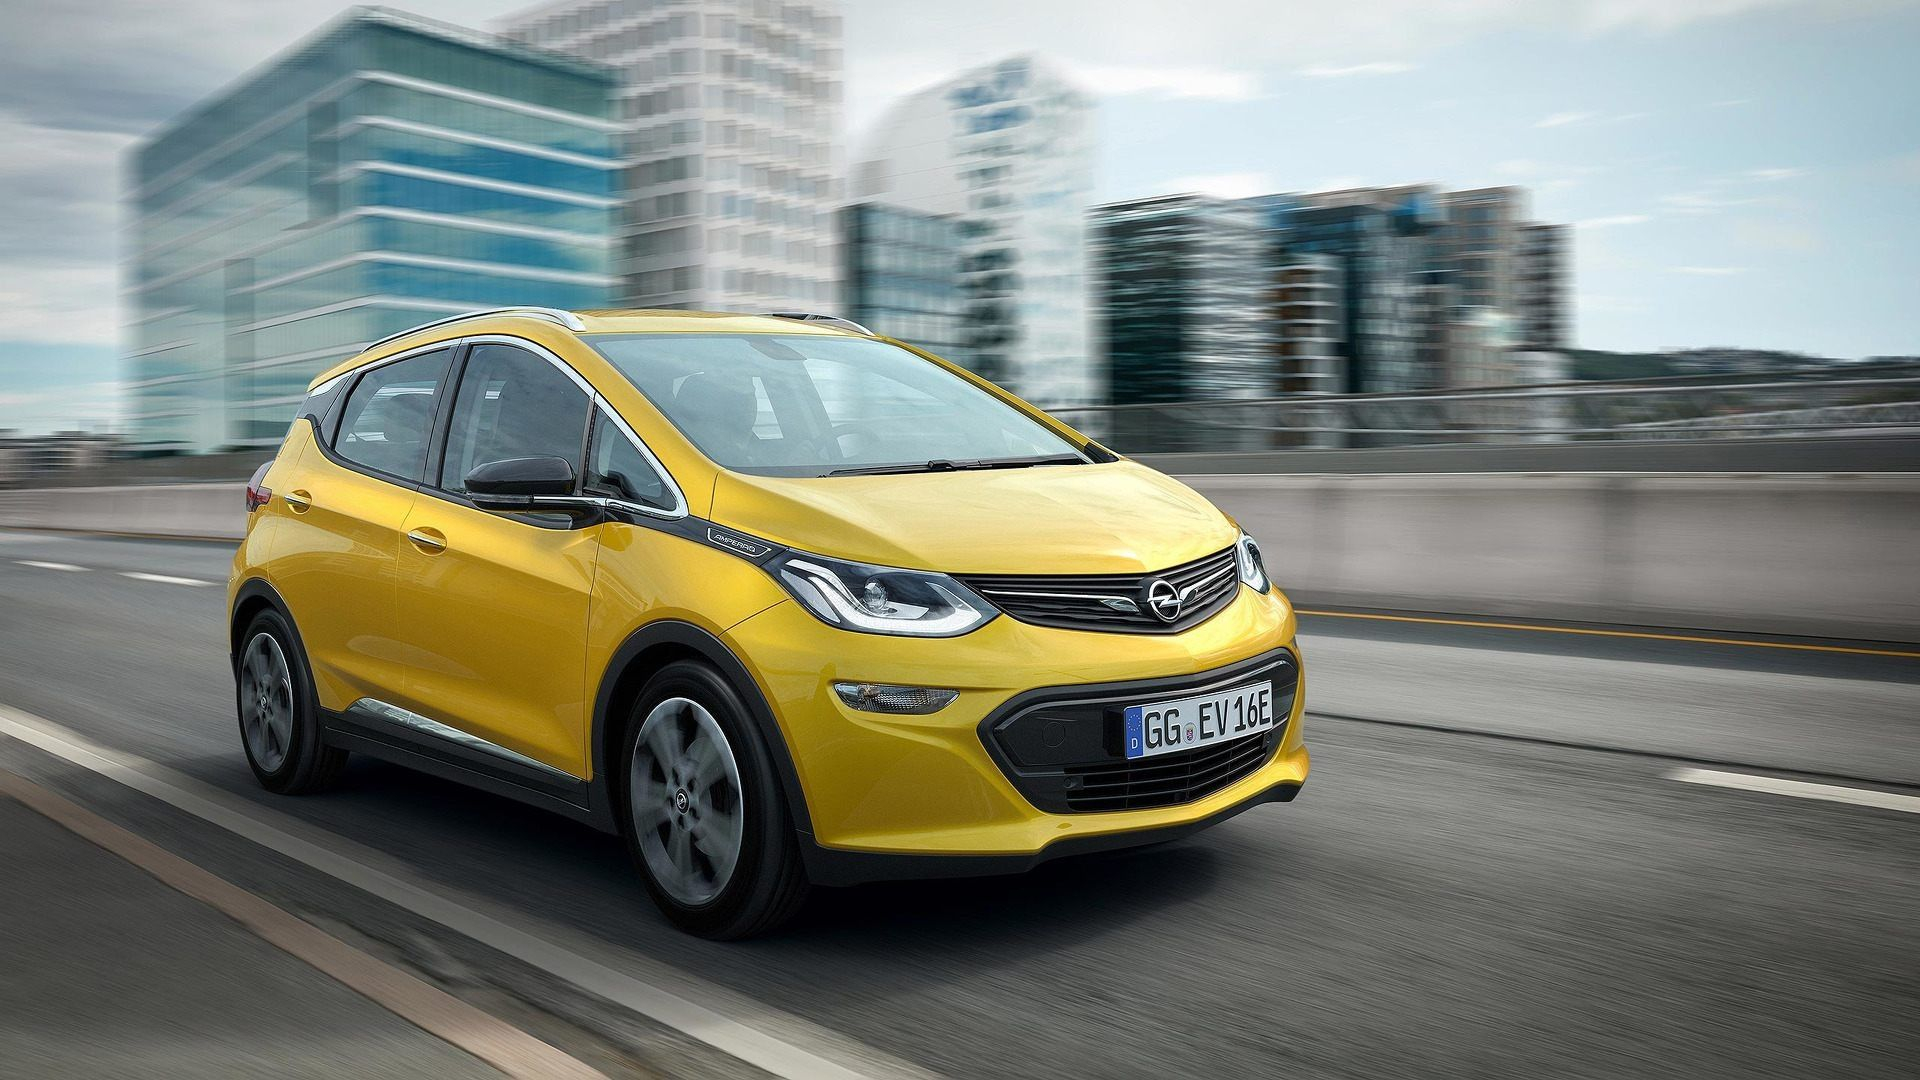 43 All New 2020 Opel Ampera Concept and Review